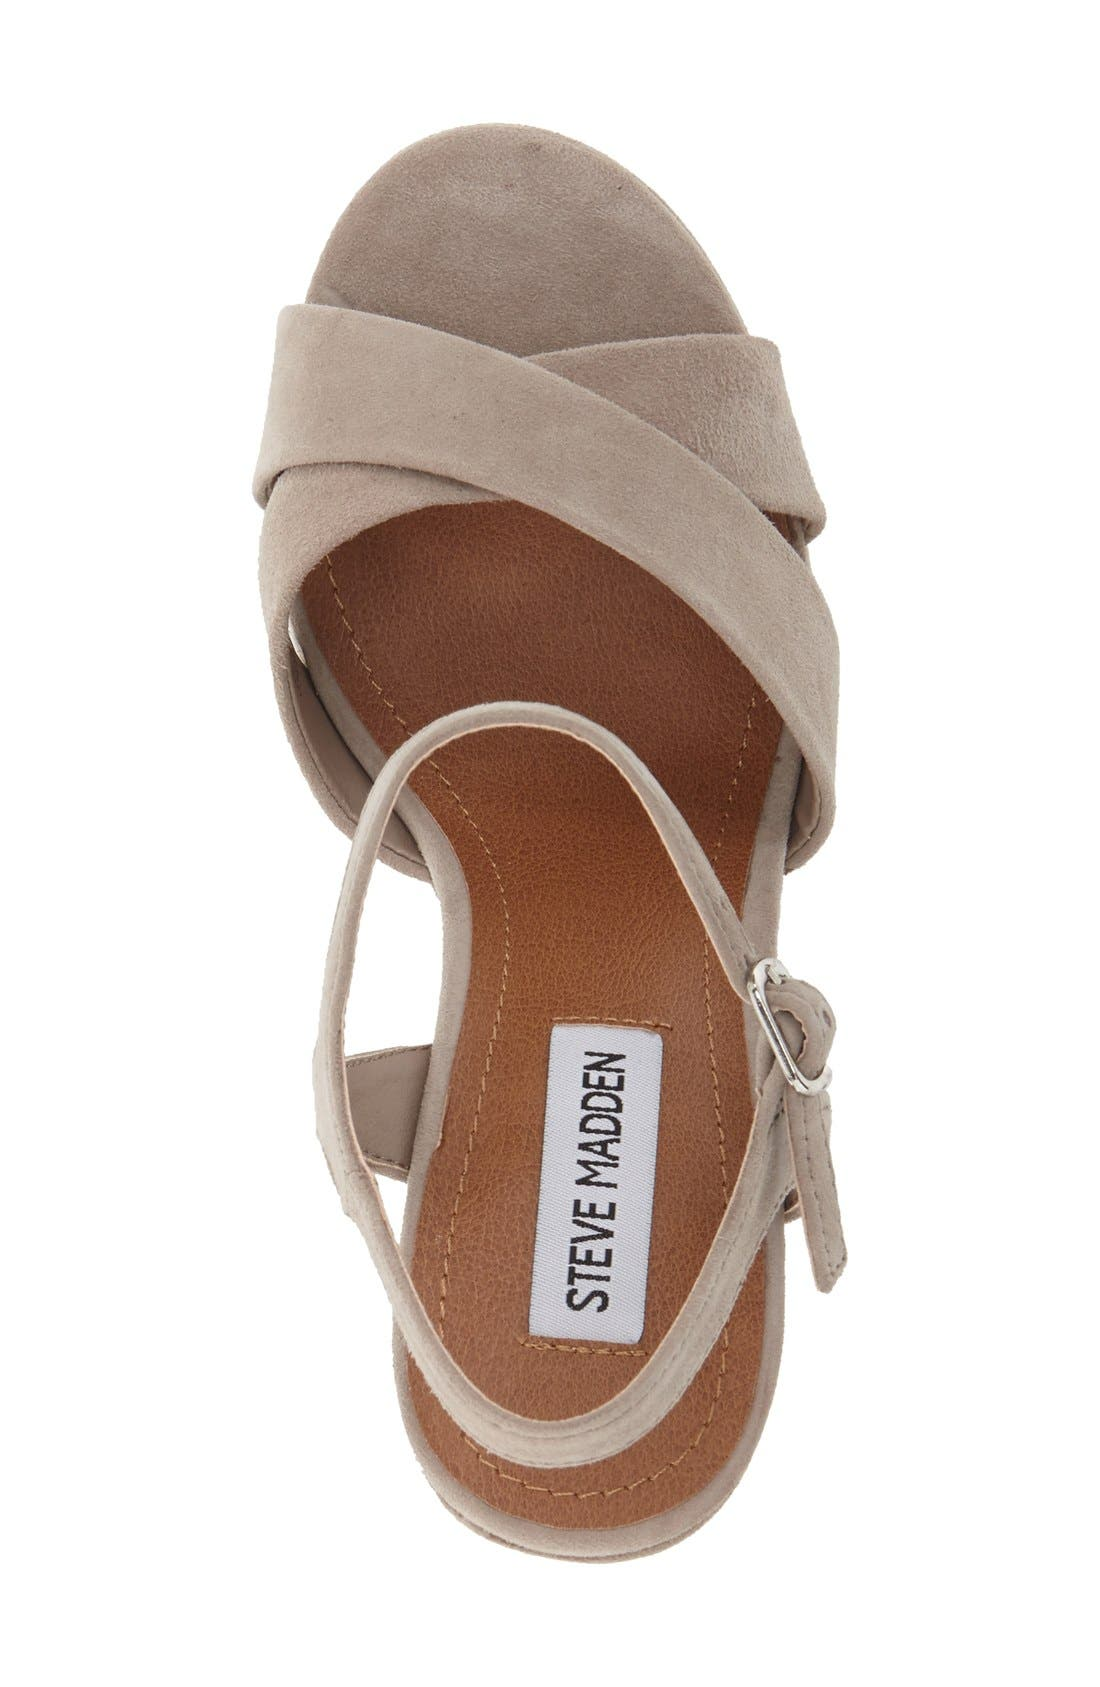 Alternate Image 3  - Steve Madden 'Casper' Platform Wedge Sandal (Women)